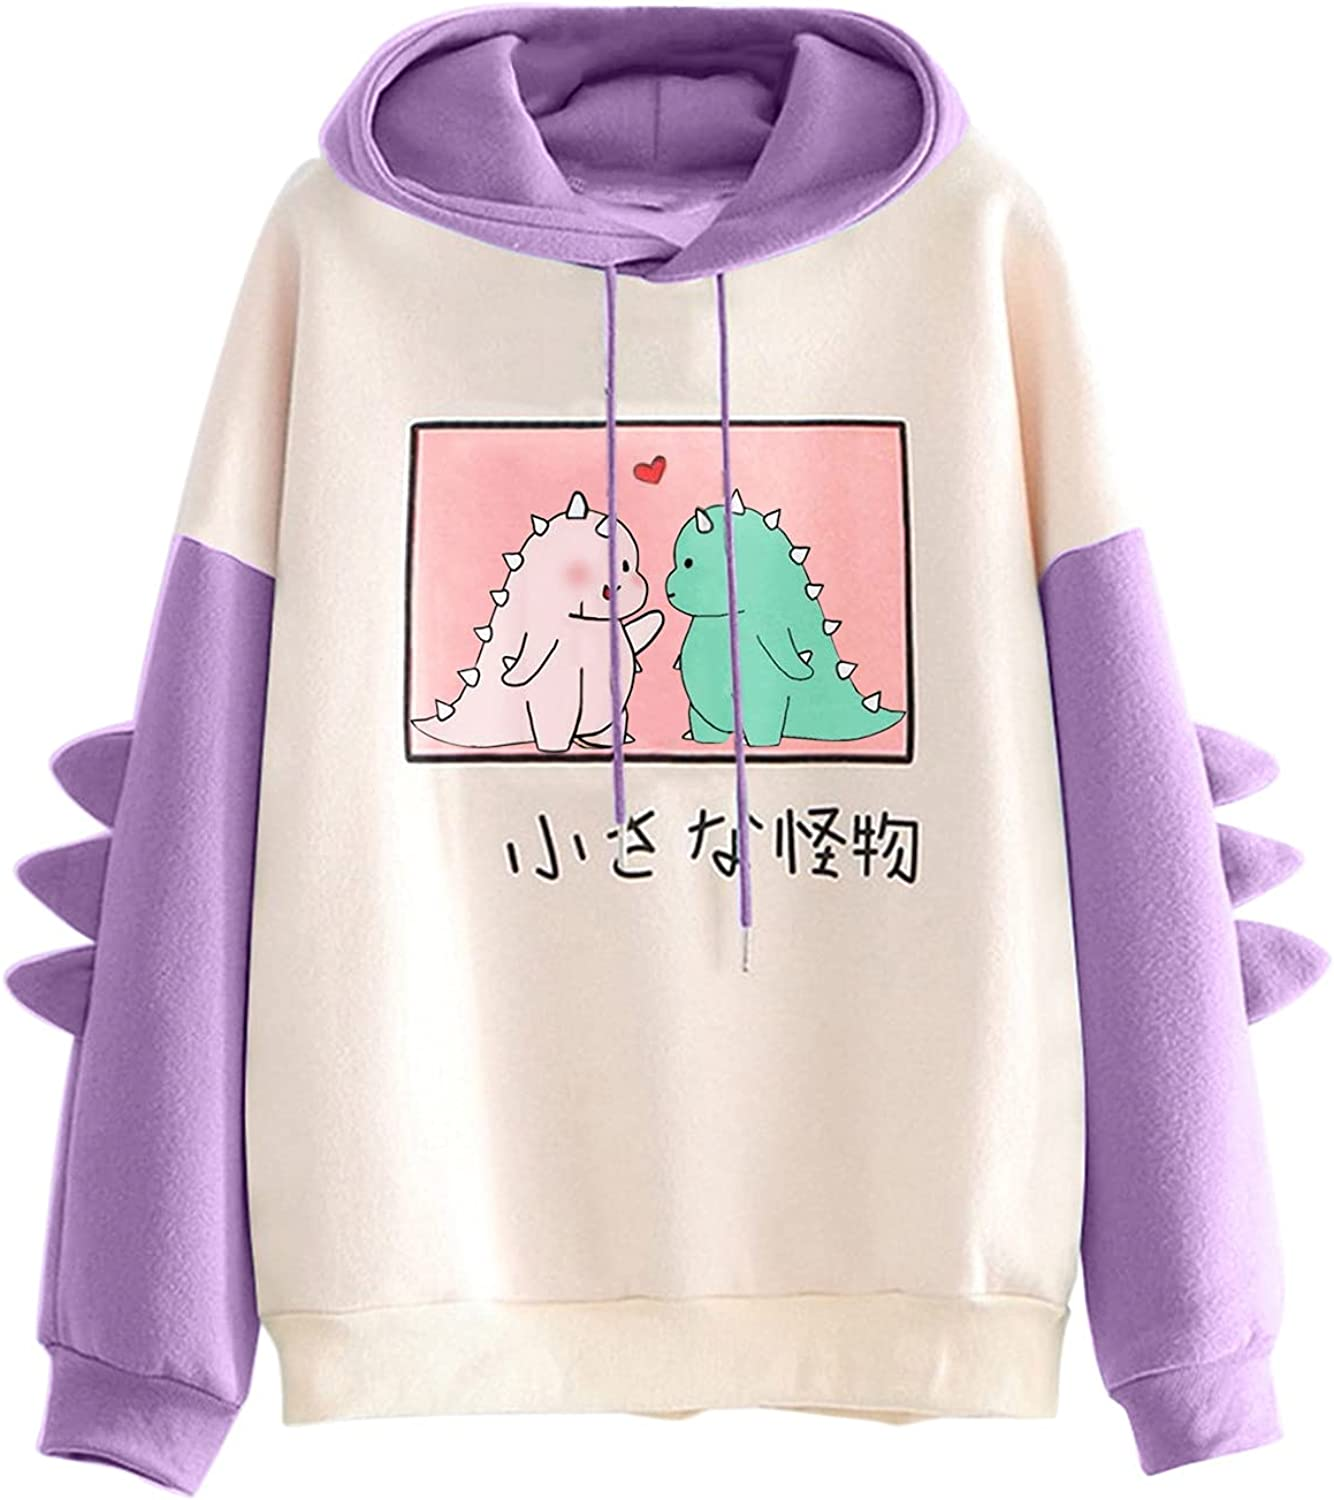 UOCUFY Hoodies for Women, Women's Casual Long Sleeve Sweatshirts with Pockets Crewneck Drawstring Hooded Pullover Top